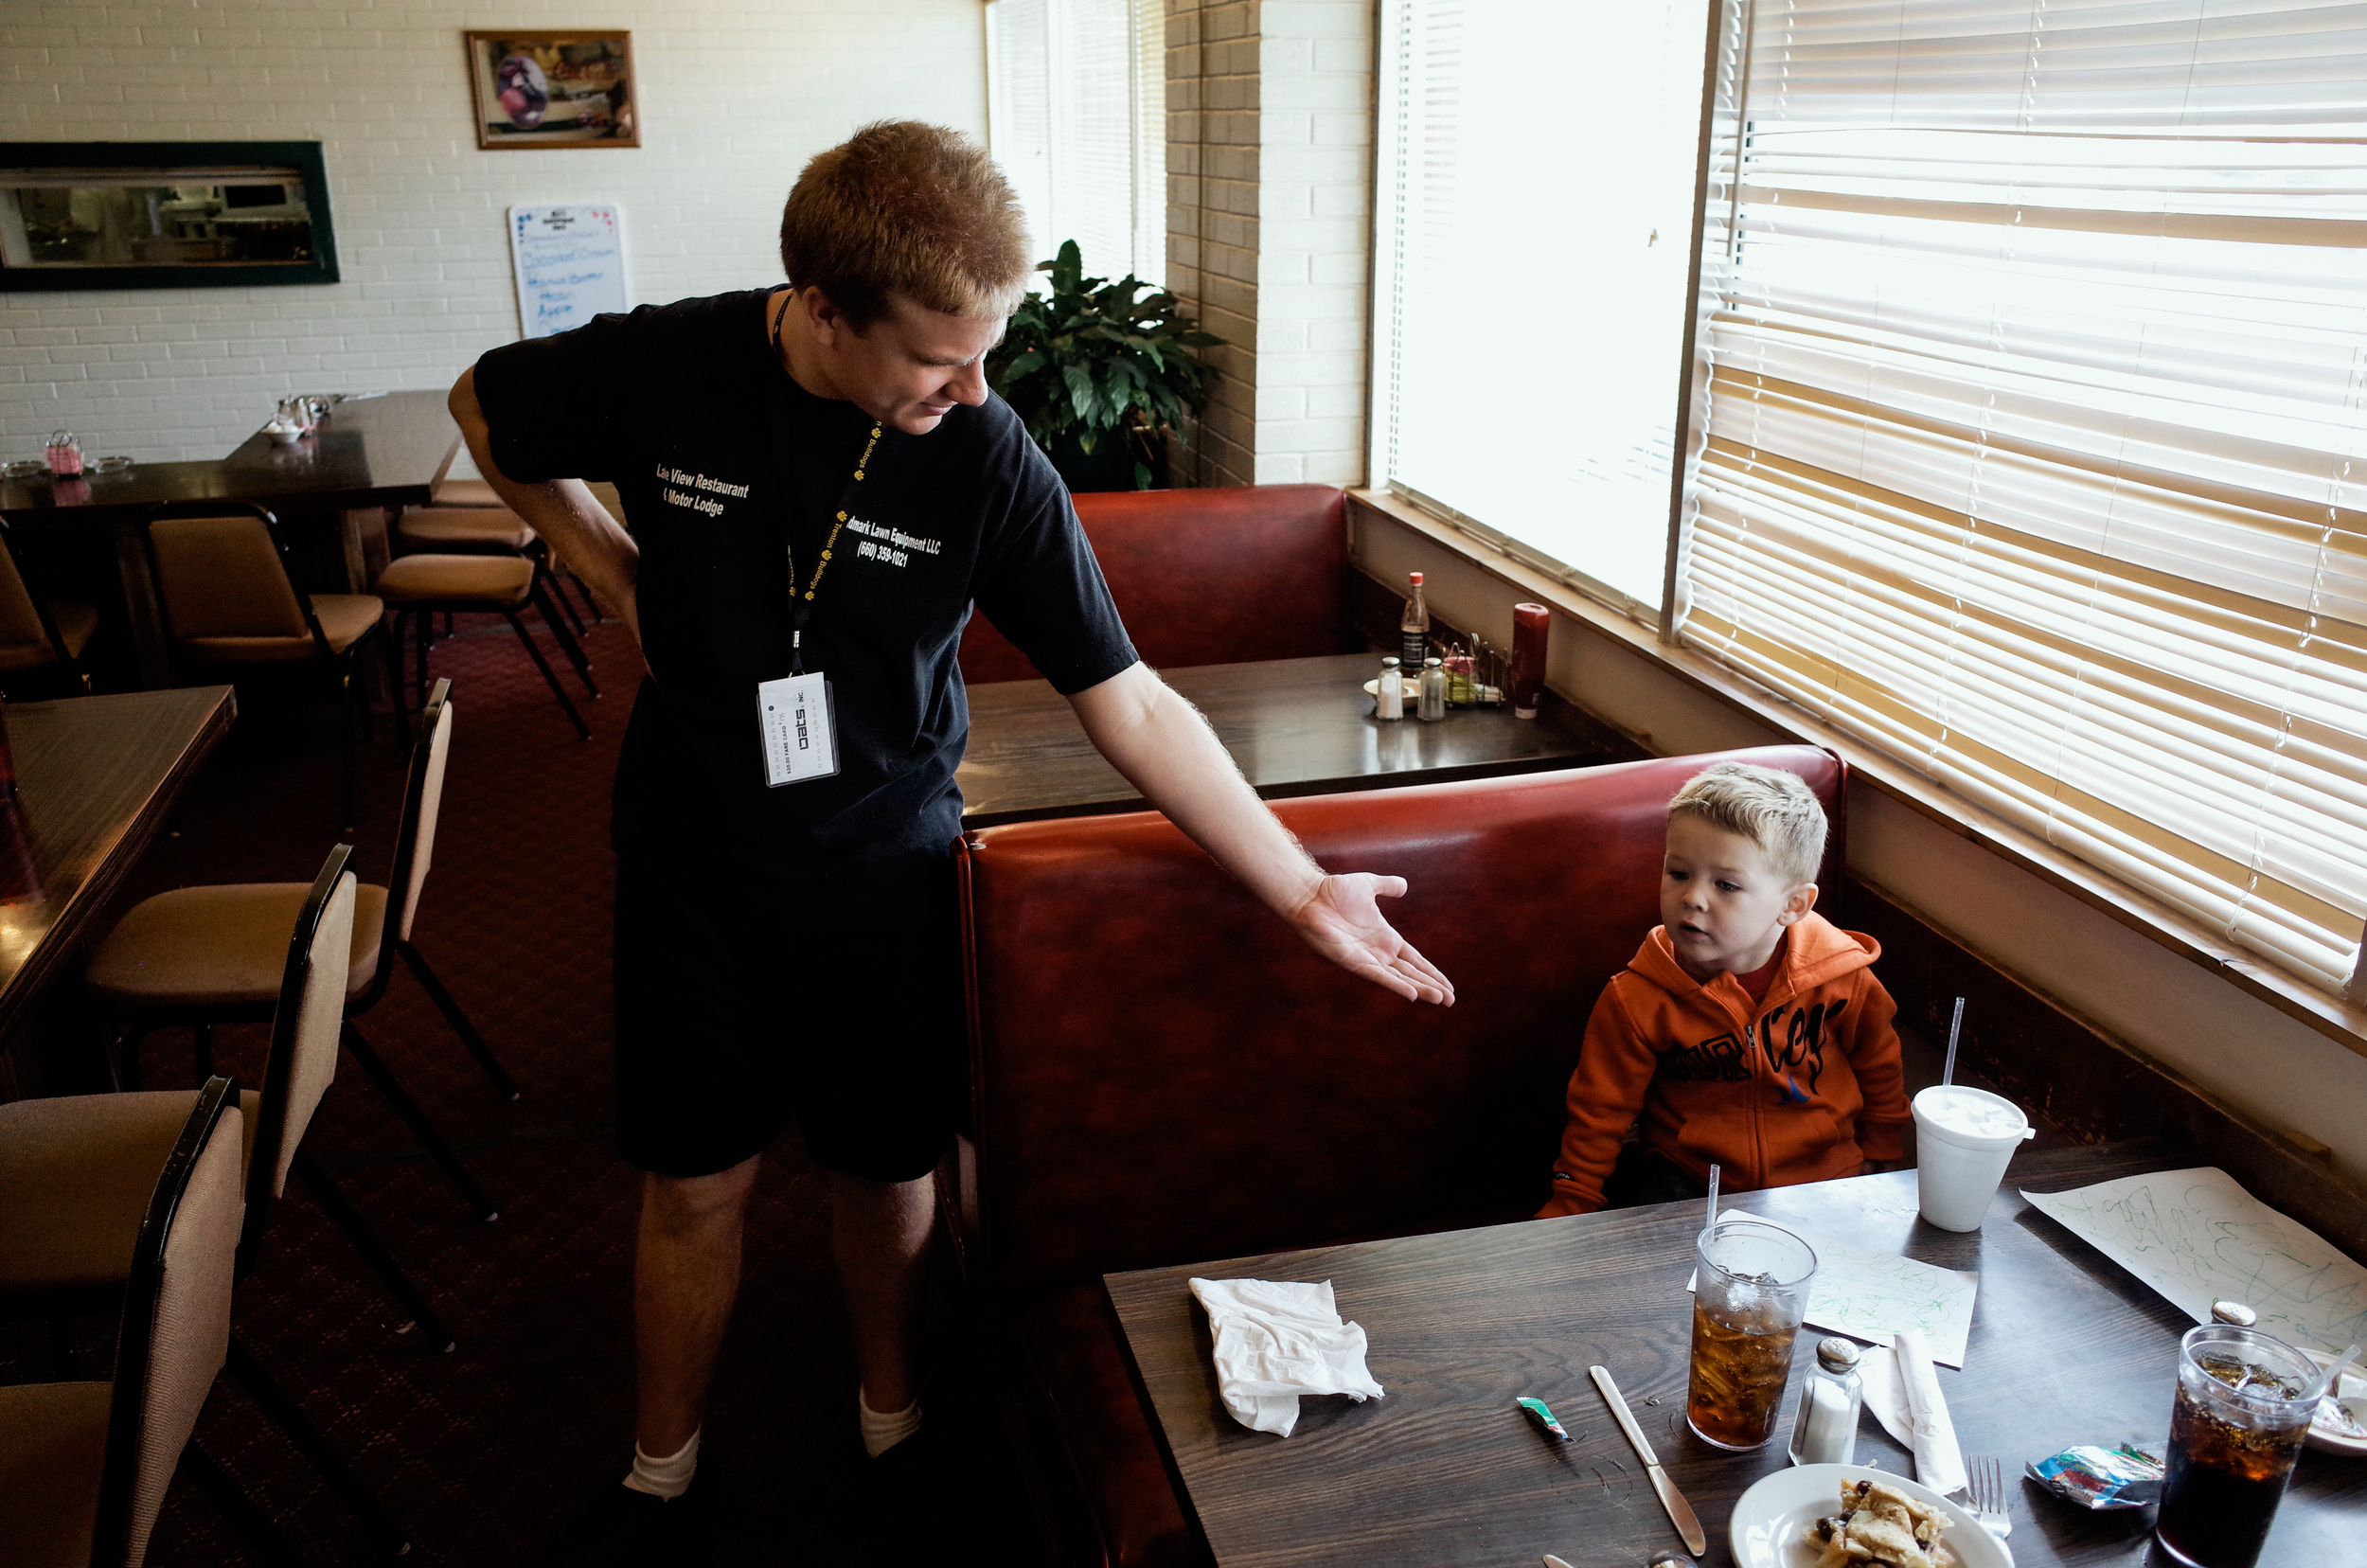 Trenton, Missouri. 2013.  One day a week Dalton works at the Lakeview Motor Lodge and Restaurant rolling silverware and wiping chairs. He always finds time to share a moment with customers.